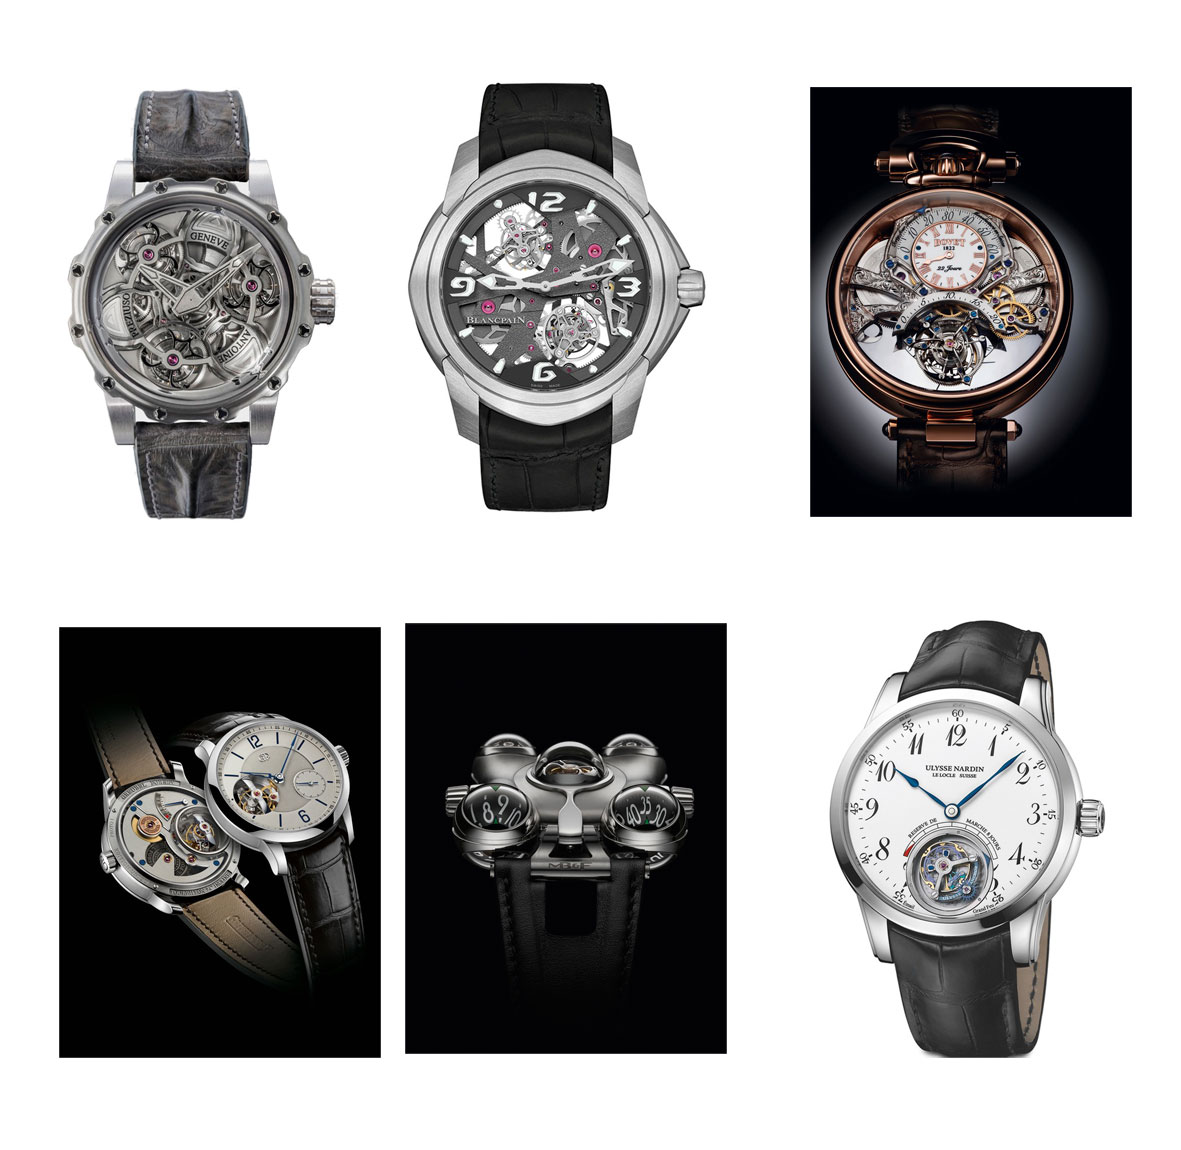 Grand Prix dHorlogerie - Tourbillon